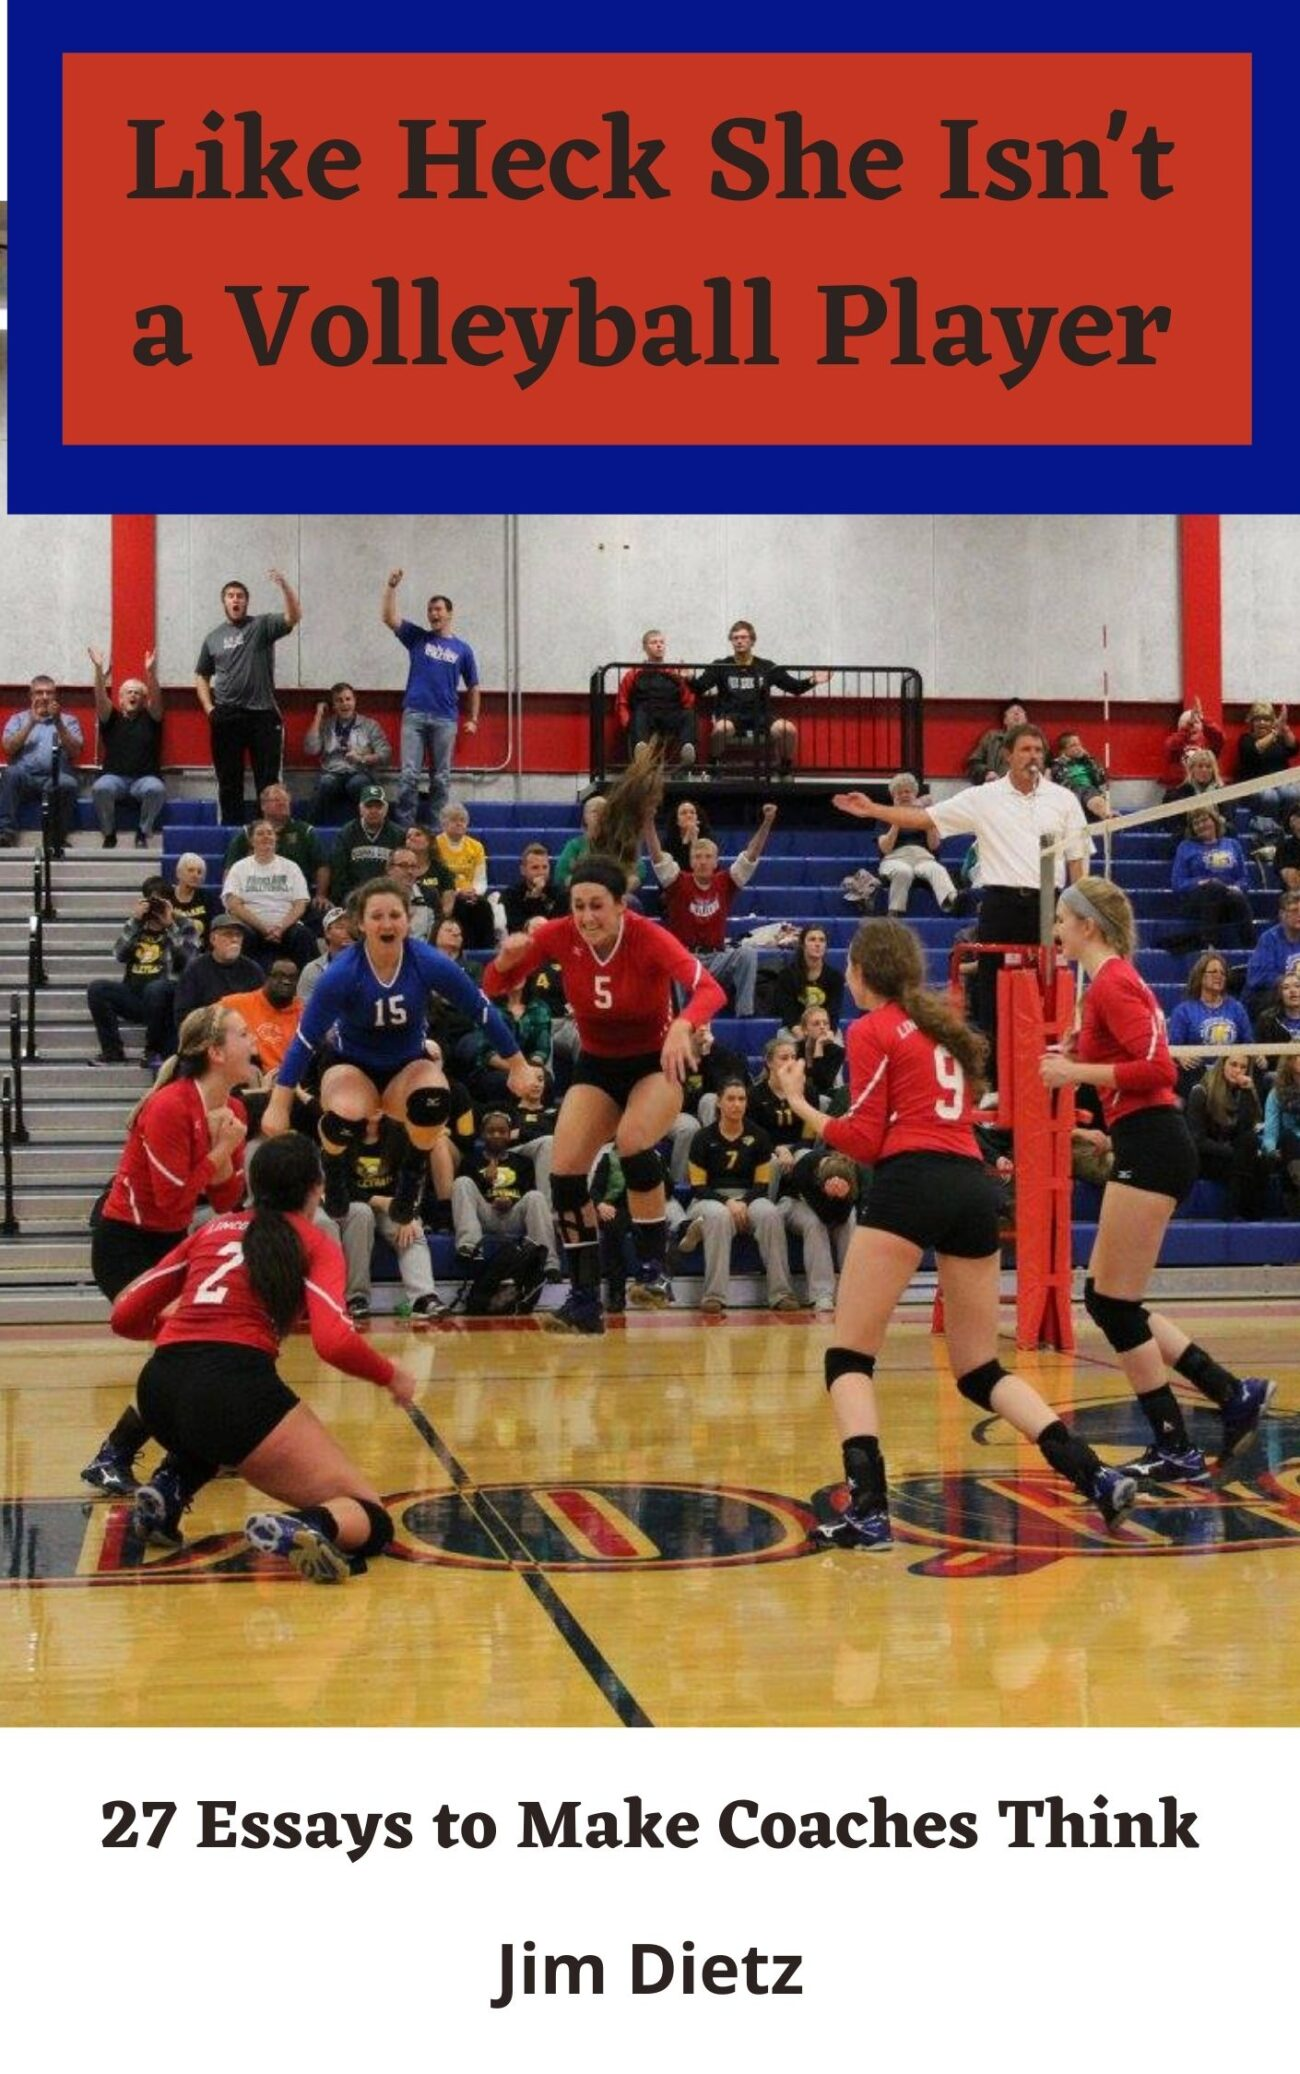 Like Heck She Isn't a Volleyball Player: 27 Essays to Make Coaches Think